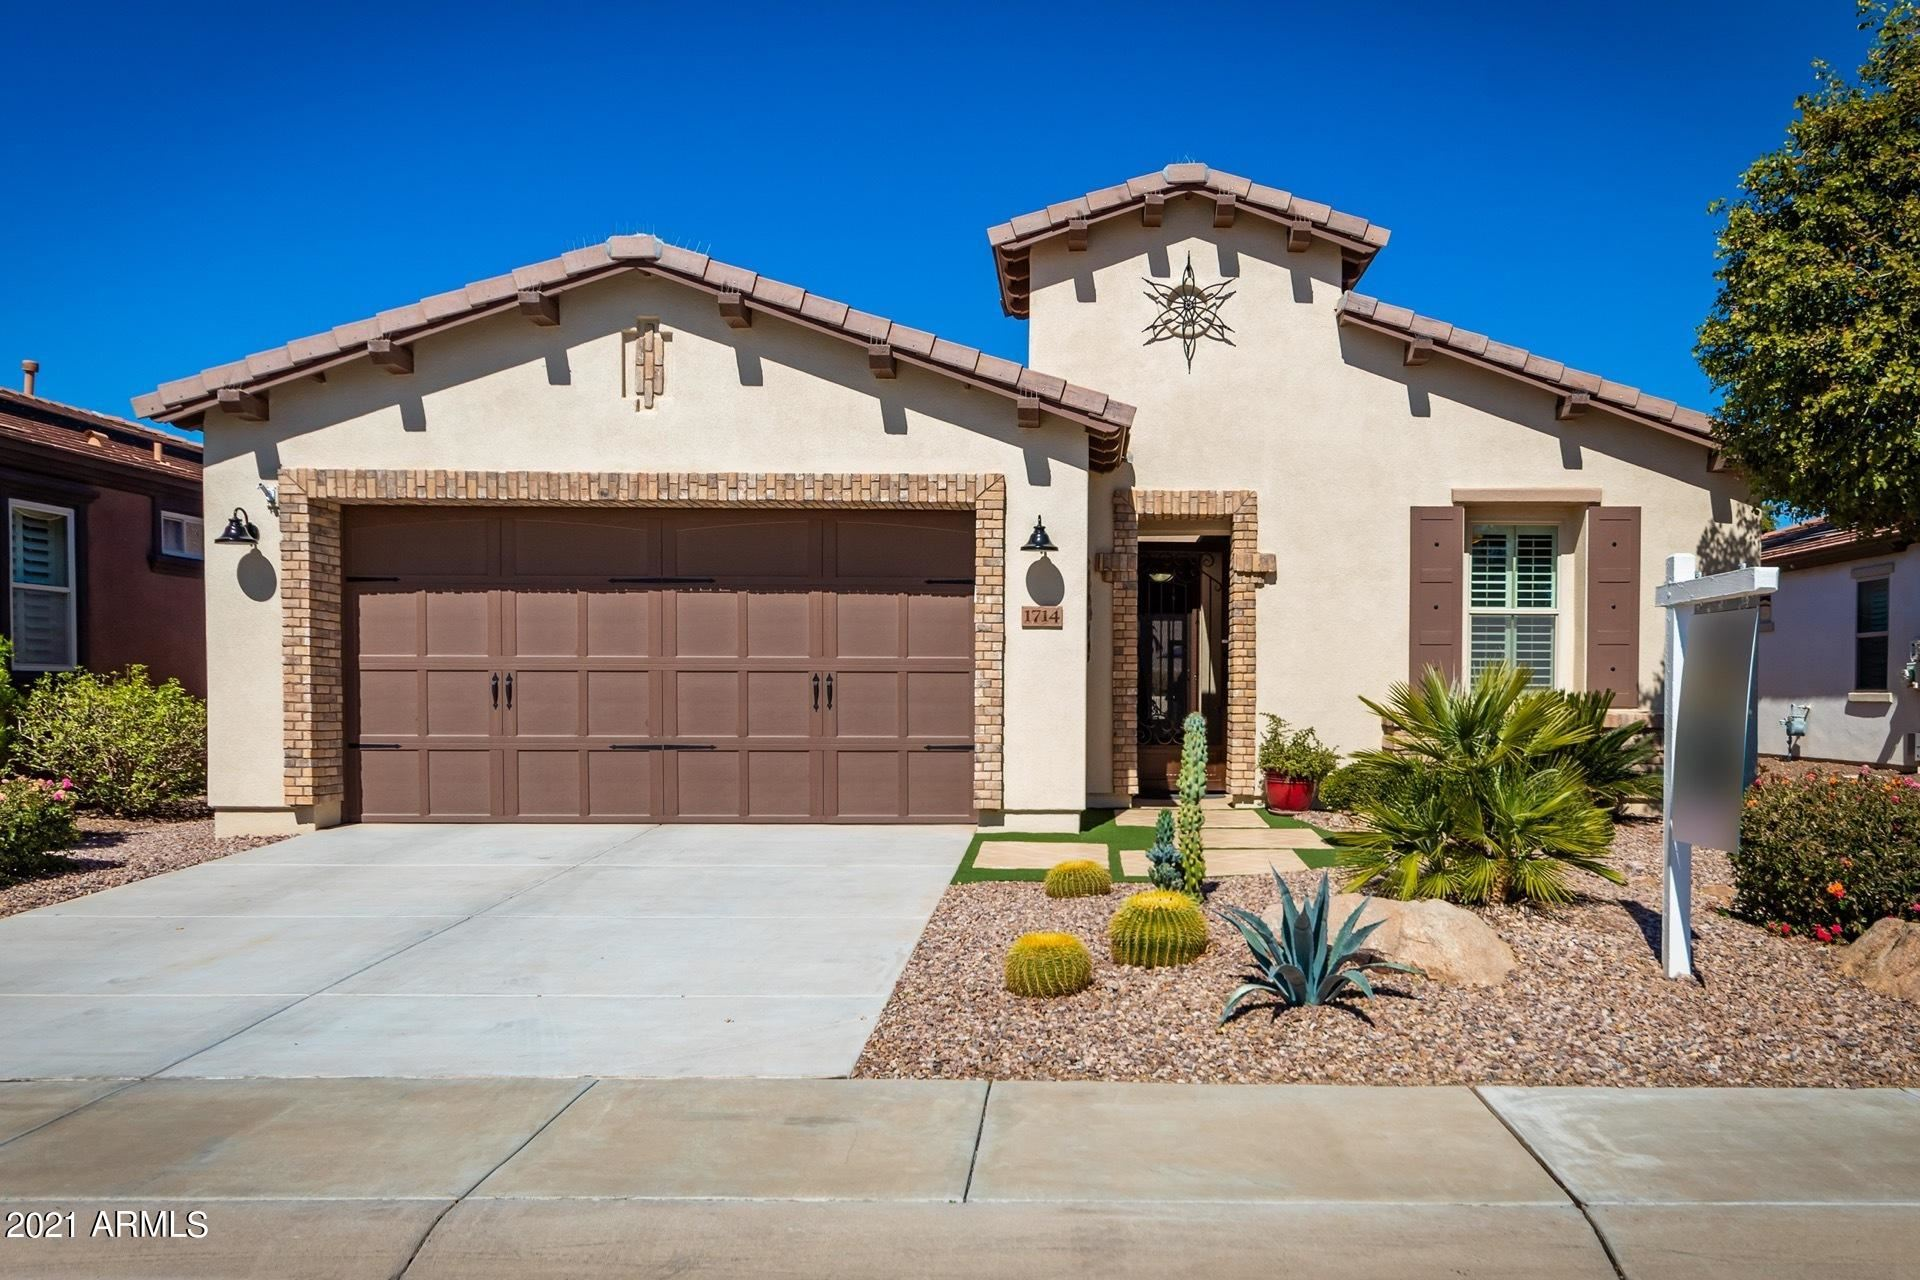 Photo of 1714 E VESPER Trail, San Tan Valley, AZ 85140 (MLS # 6200426)